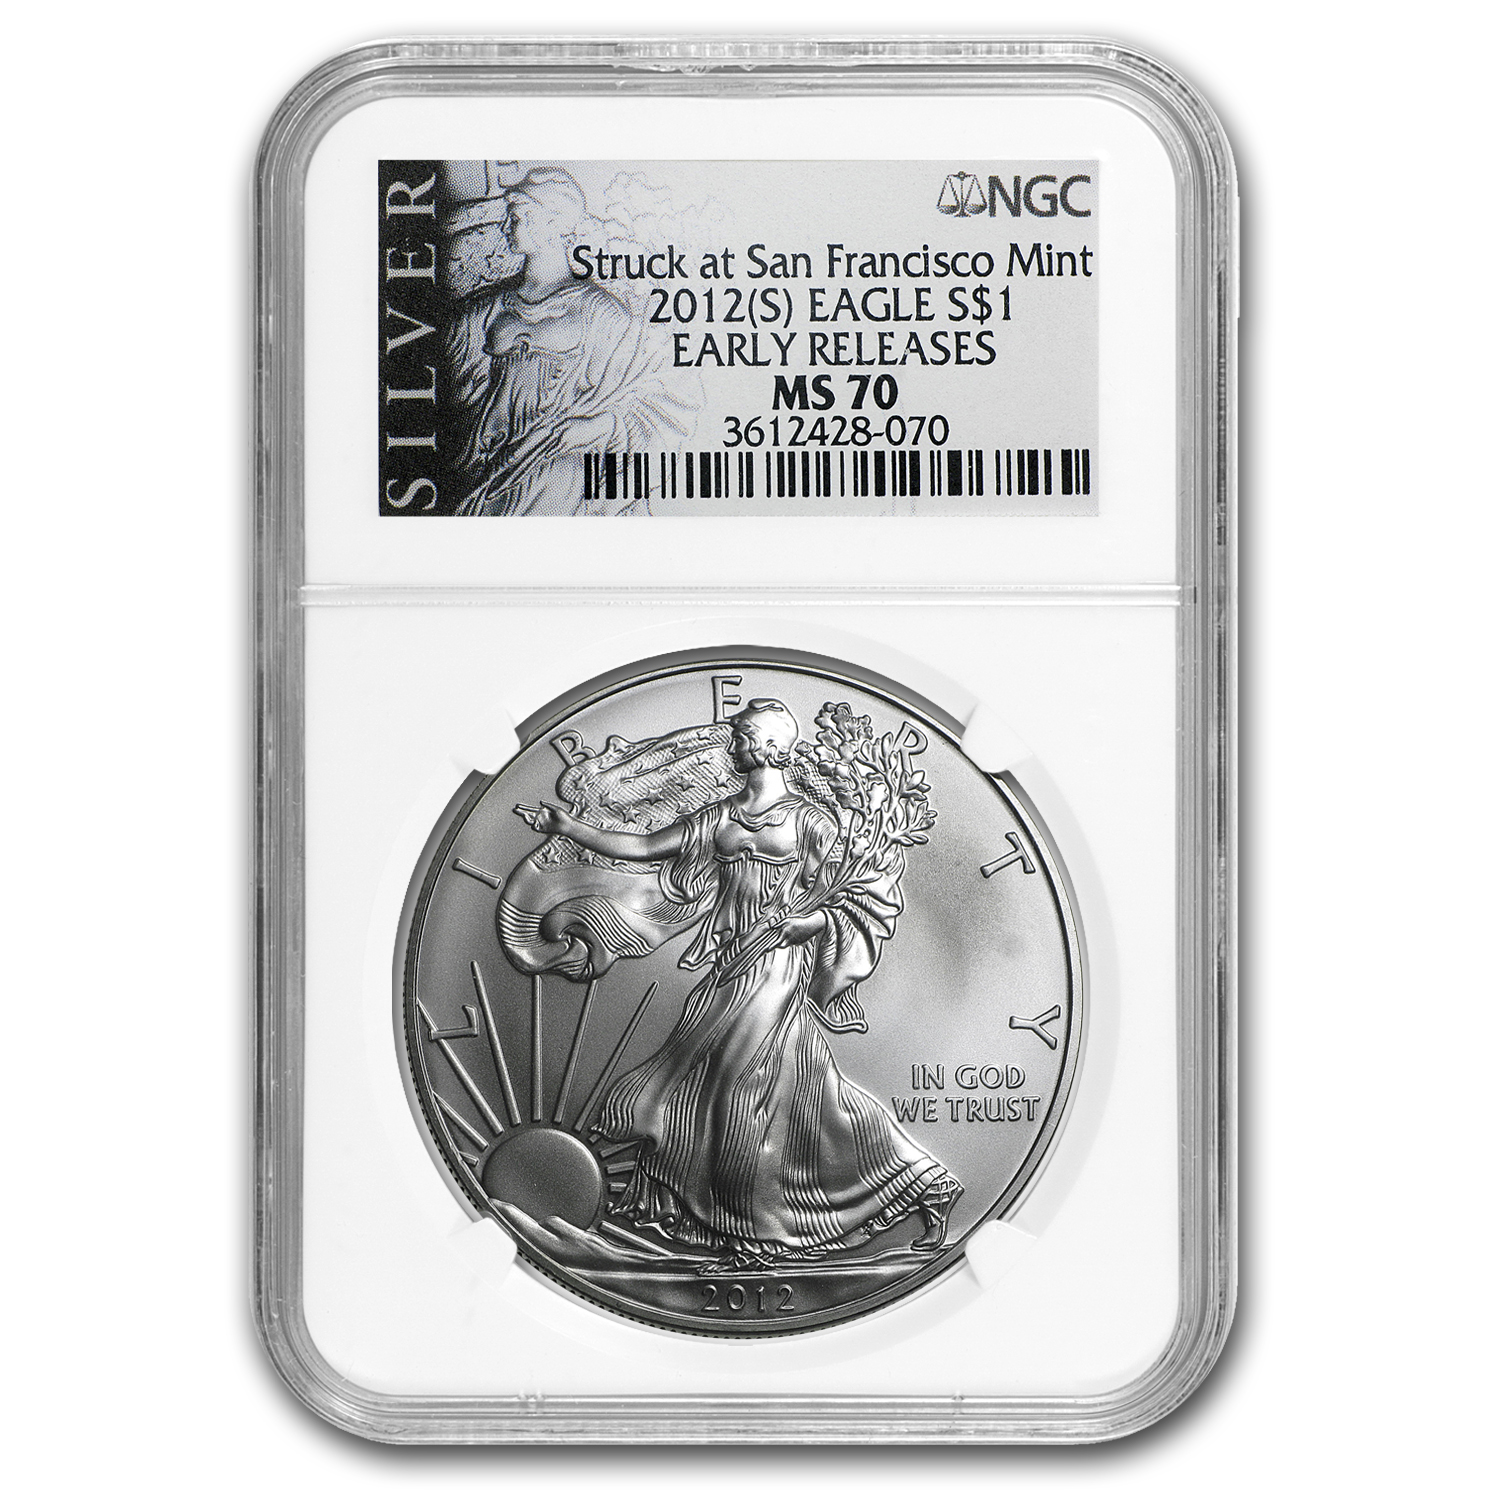 2012 (S) Silver American Eagle MS-70 NGC (ALS Label, ER)